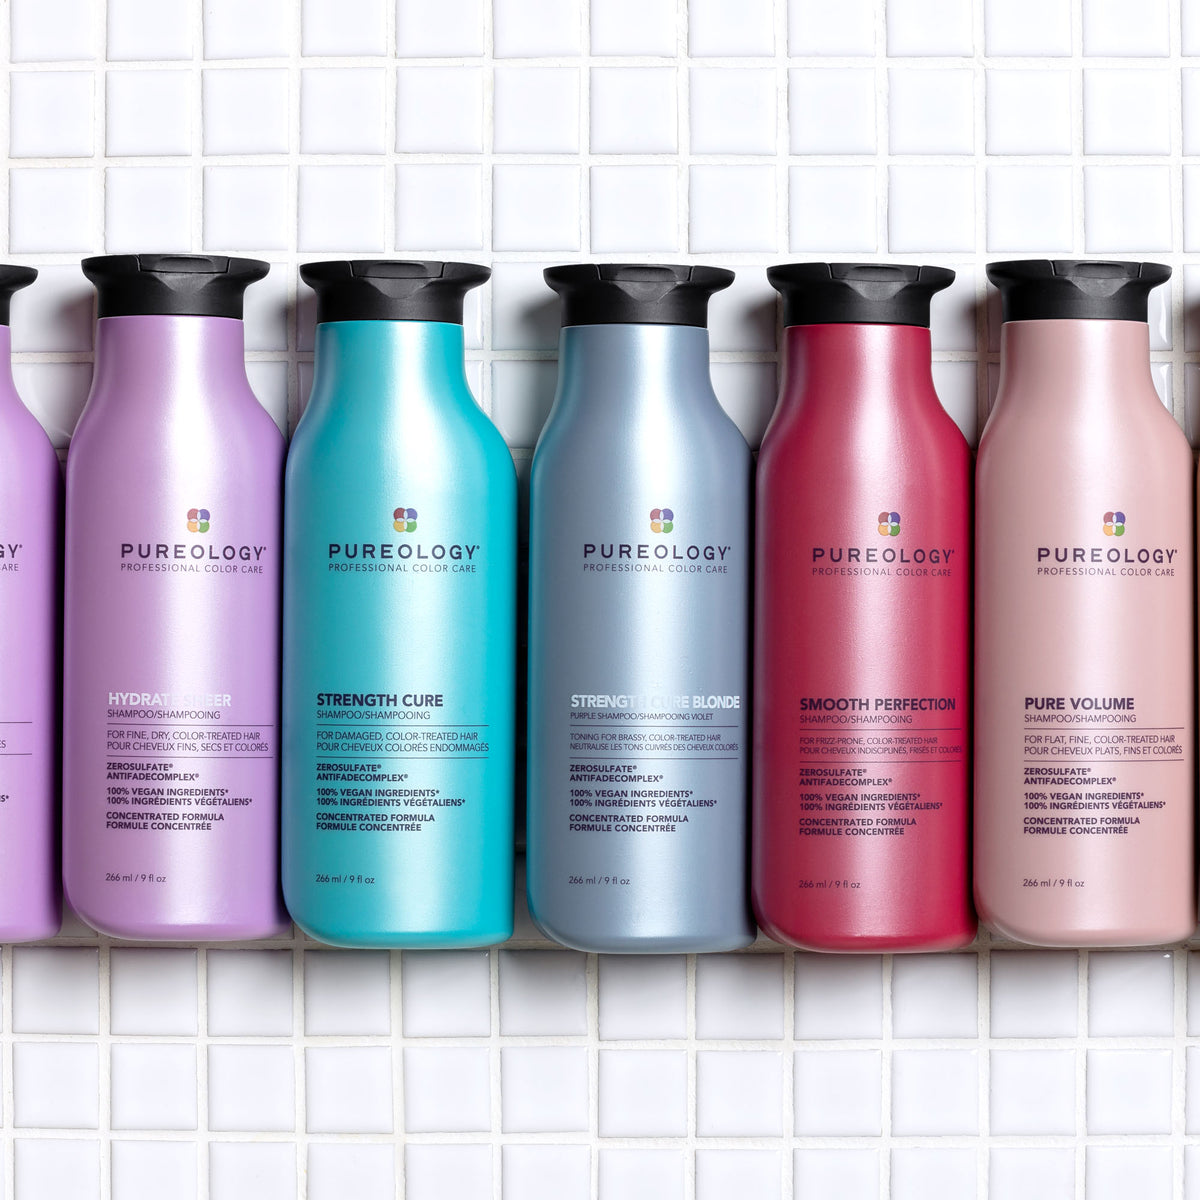 Pureology sulphate-free hair products